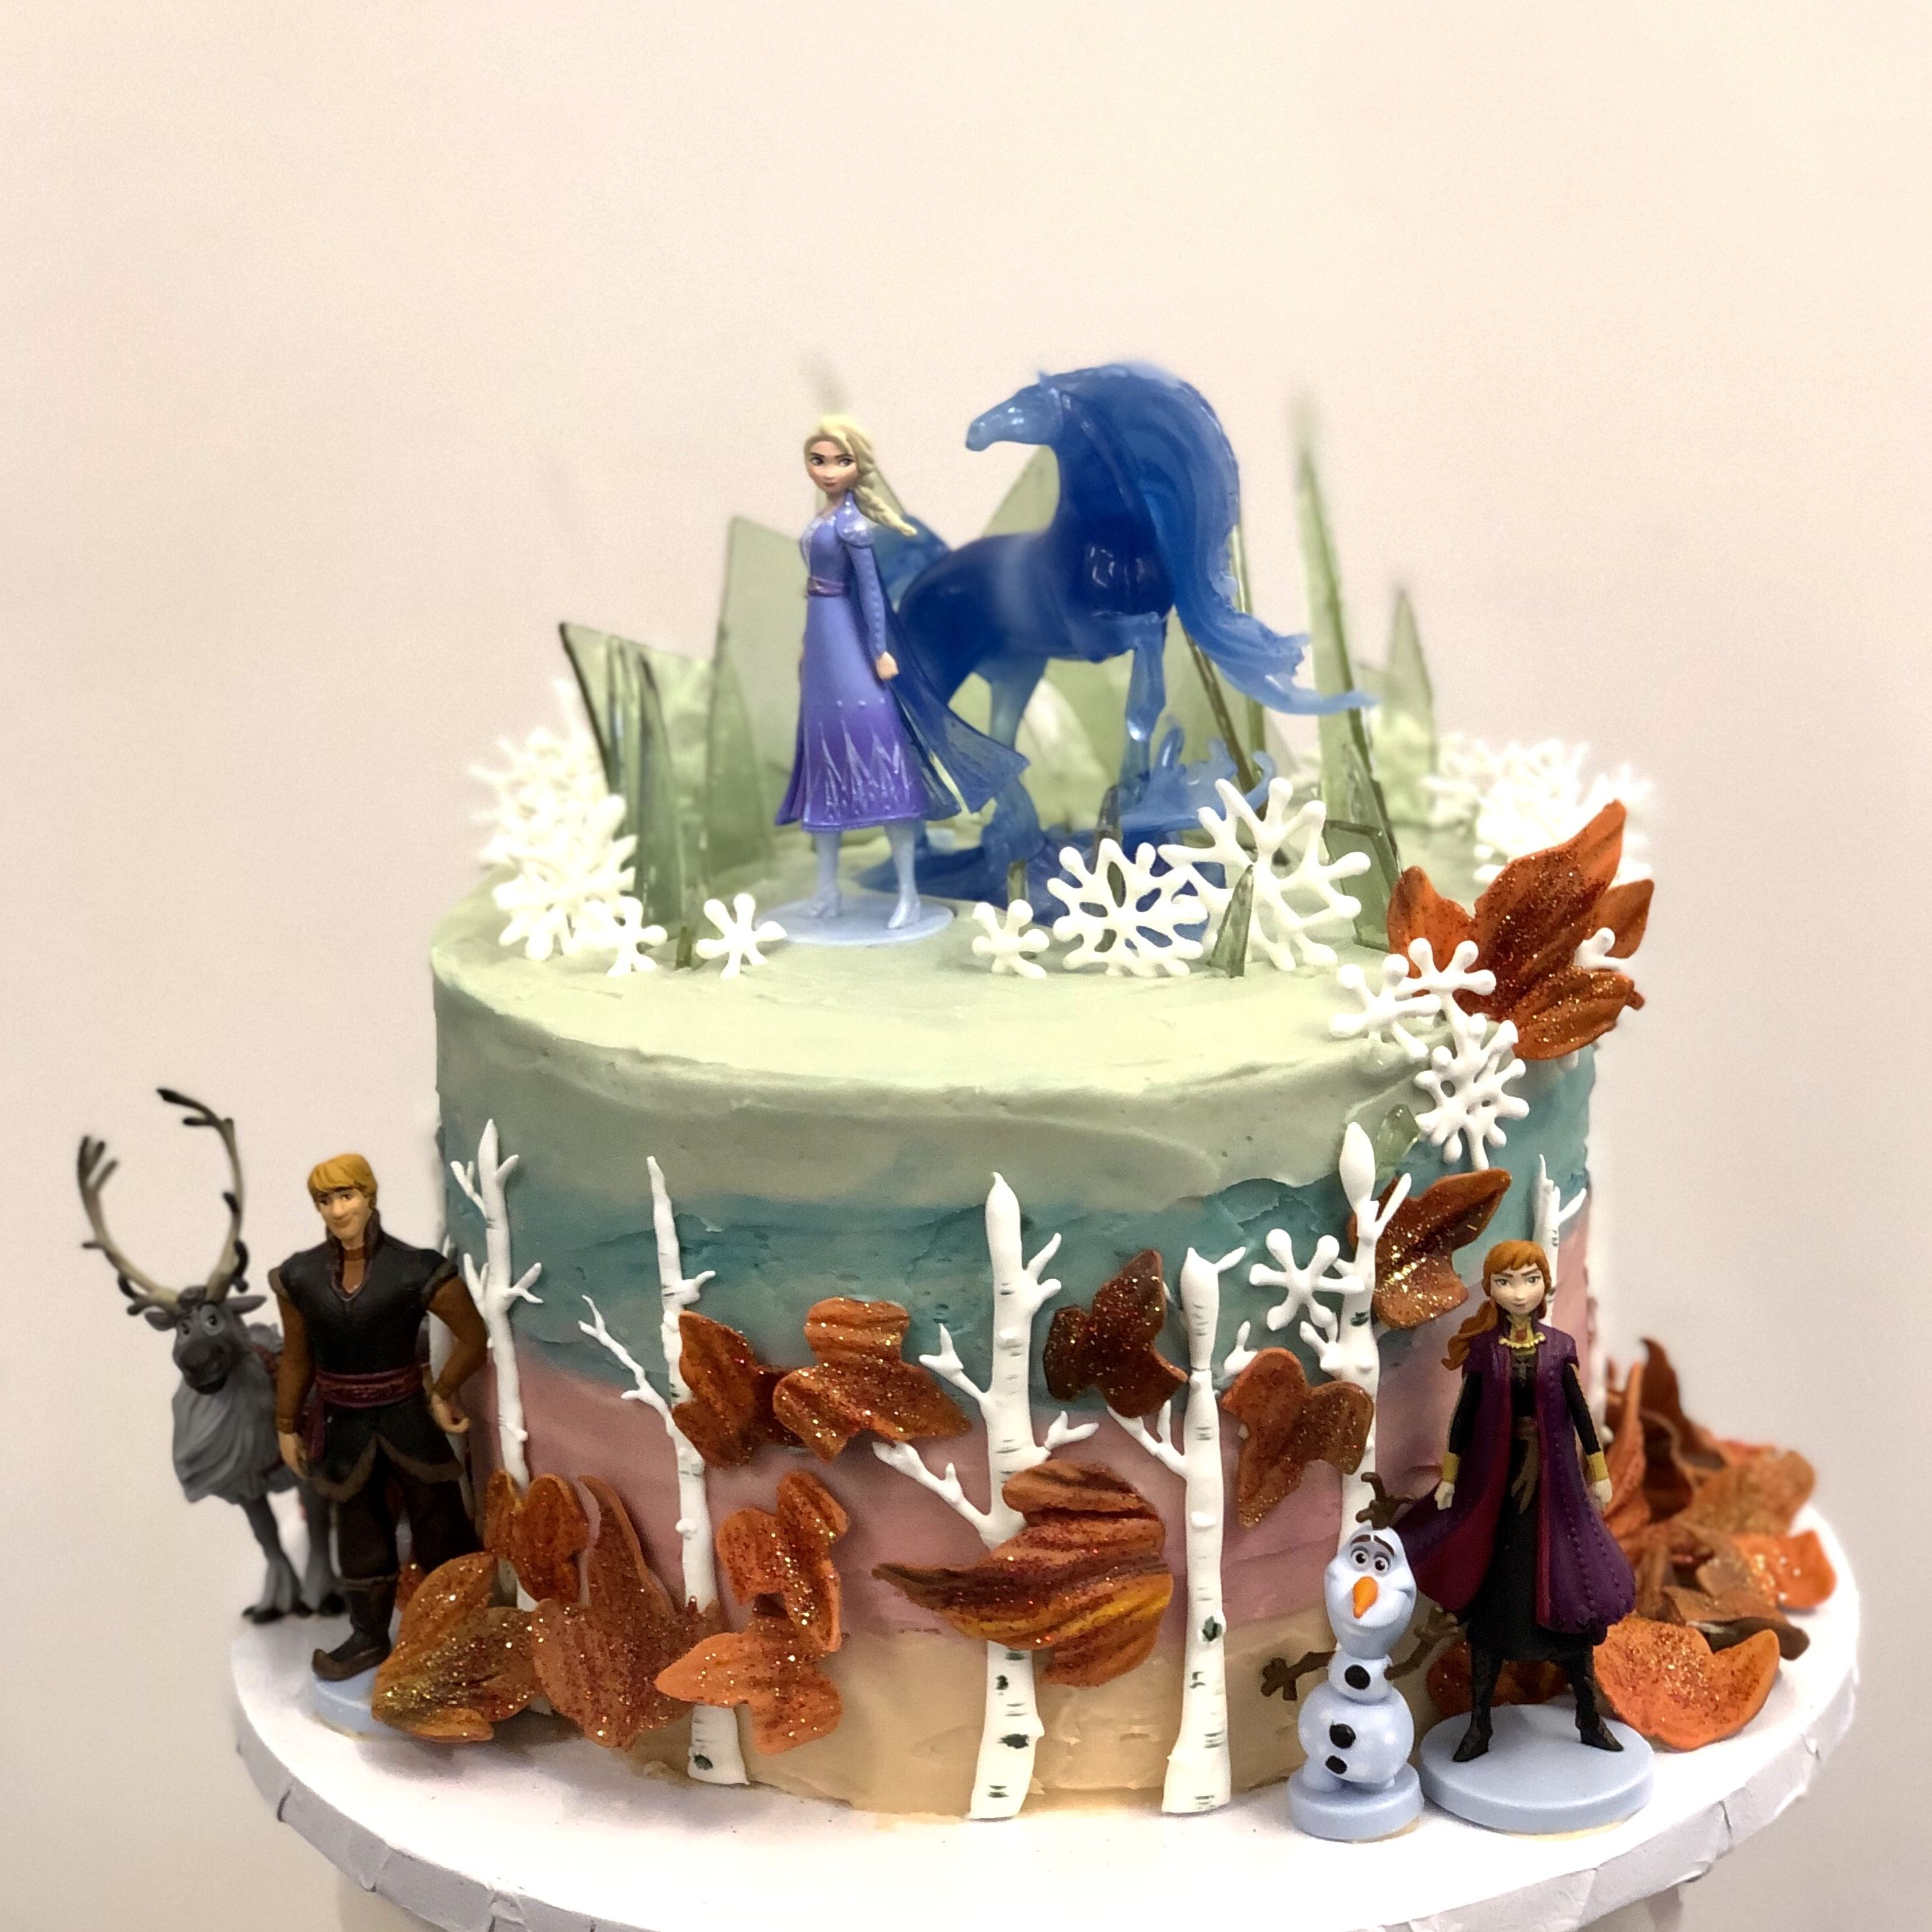 Frozen 2 Cake With Plastic Figurines Fondant Leaves Royal Icing